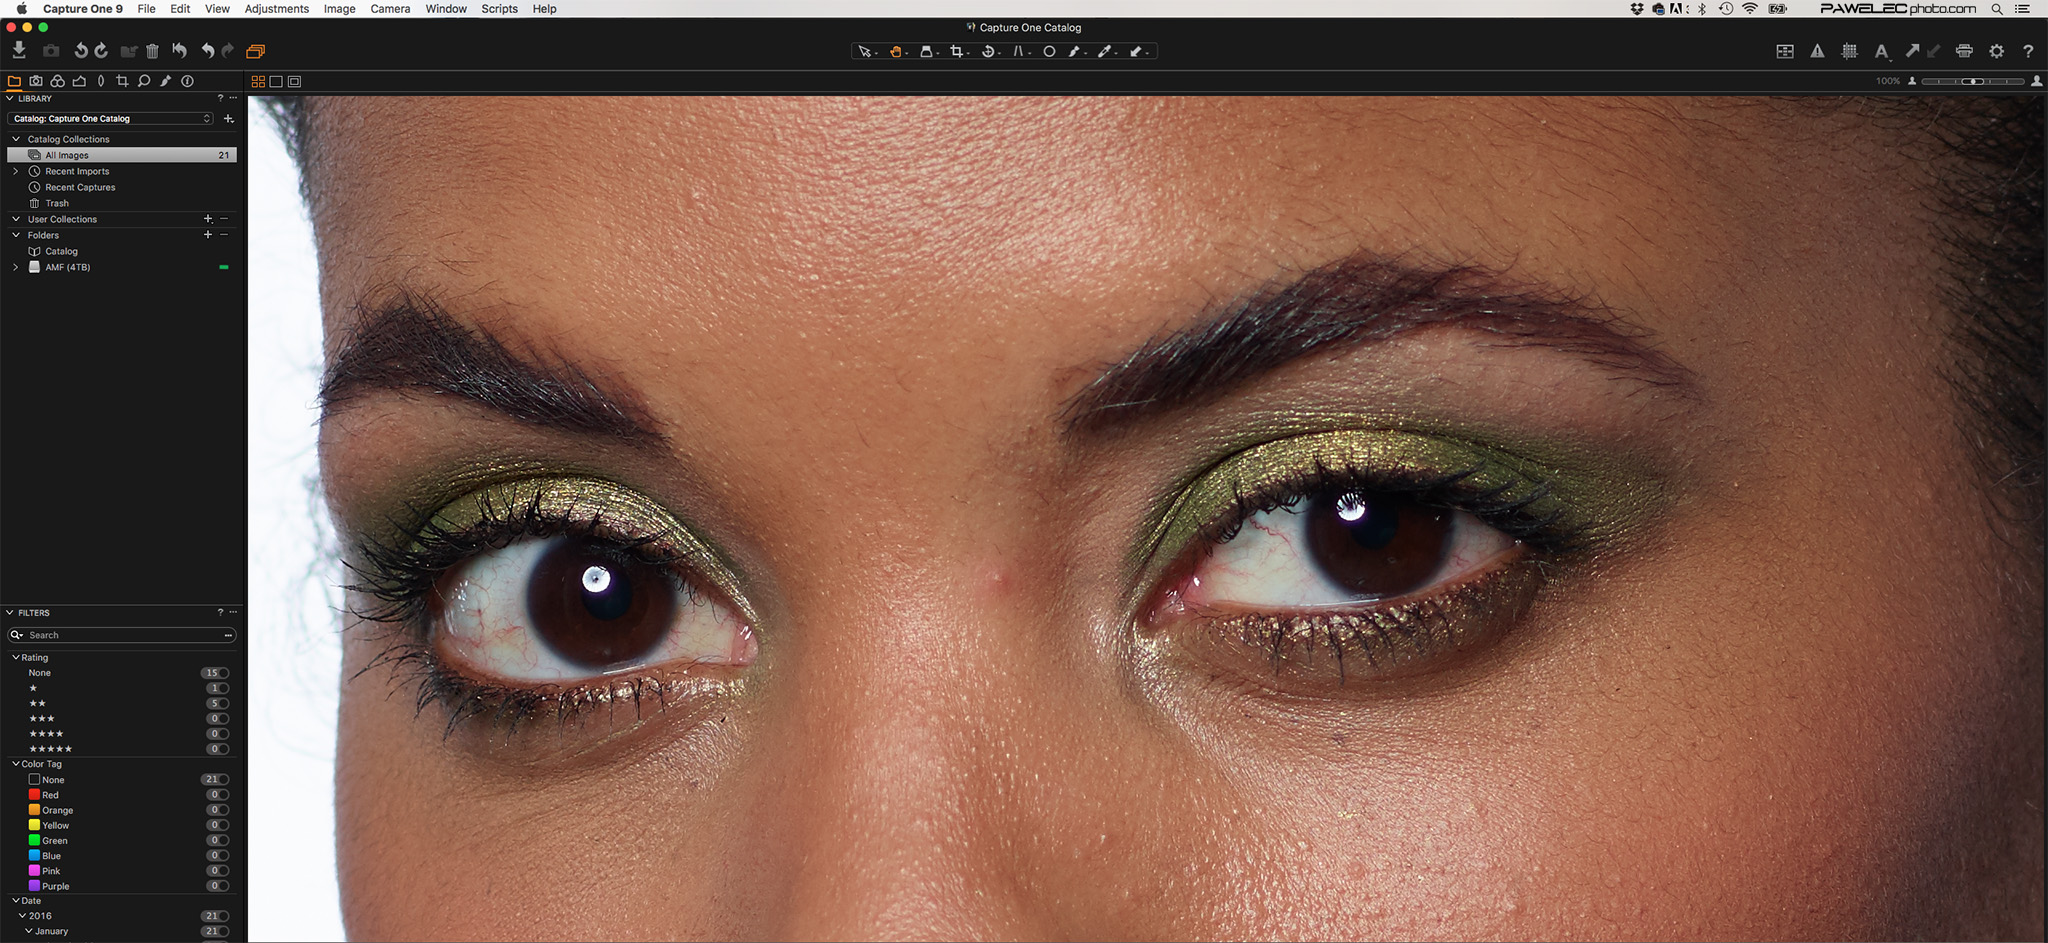 Unedited Phase One 100MP file from the XF in Capture One Pro at 100% magnification! Amazing detail the eyes and skin texture!